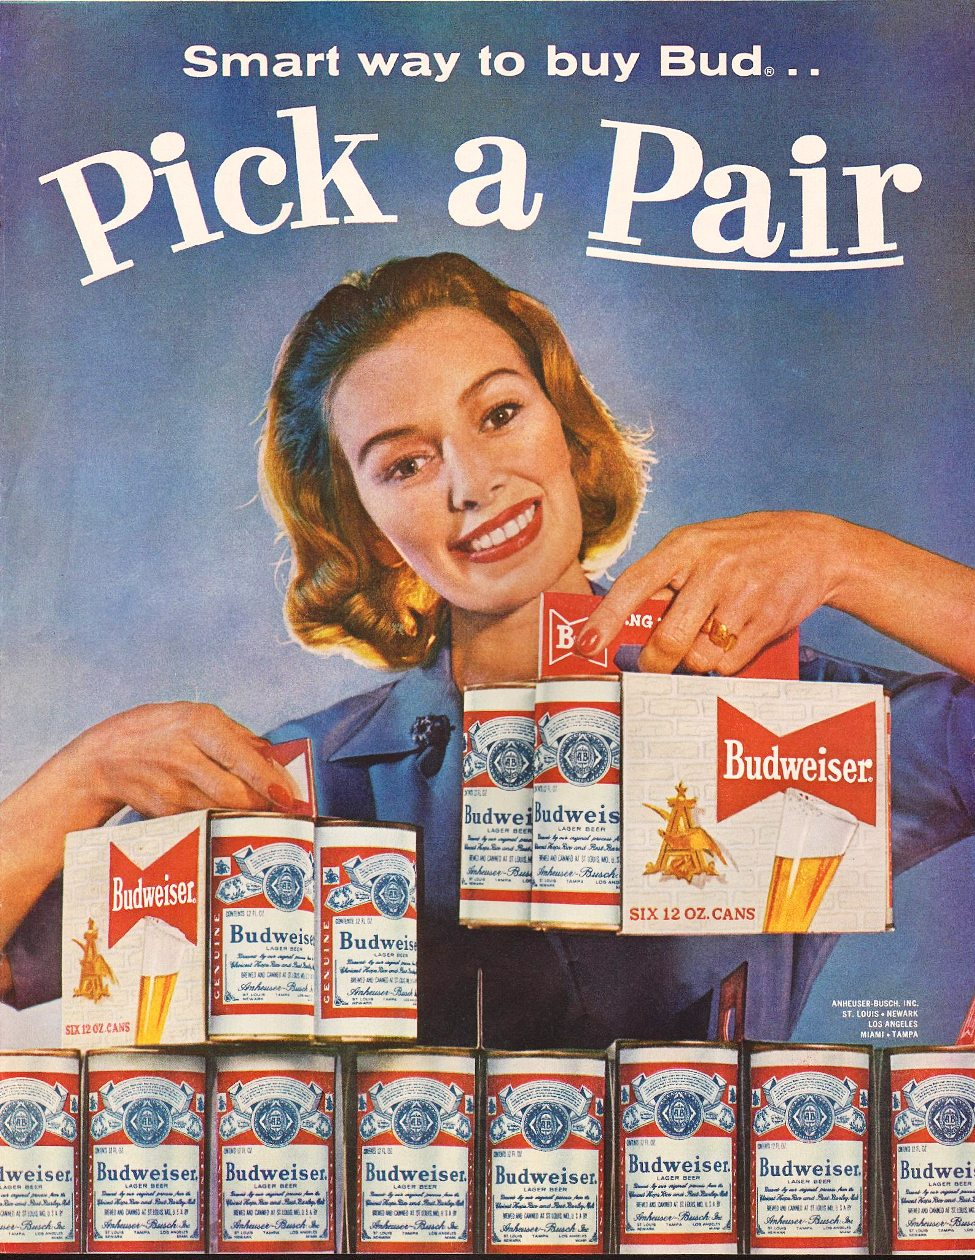 BUDWEISER BEER SATURDAY EVENING POST 06/04/1960 p. 73